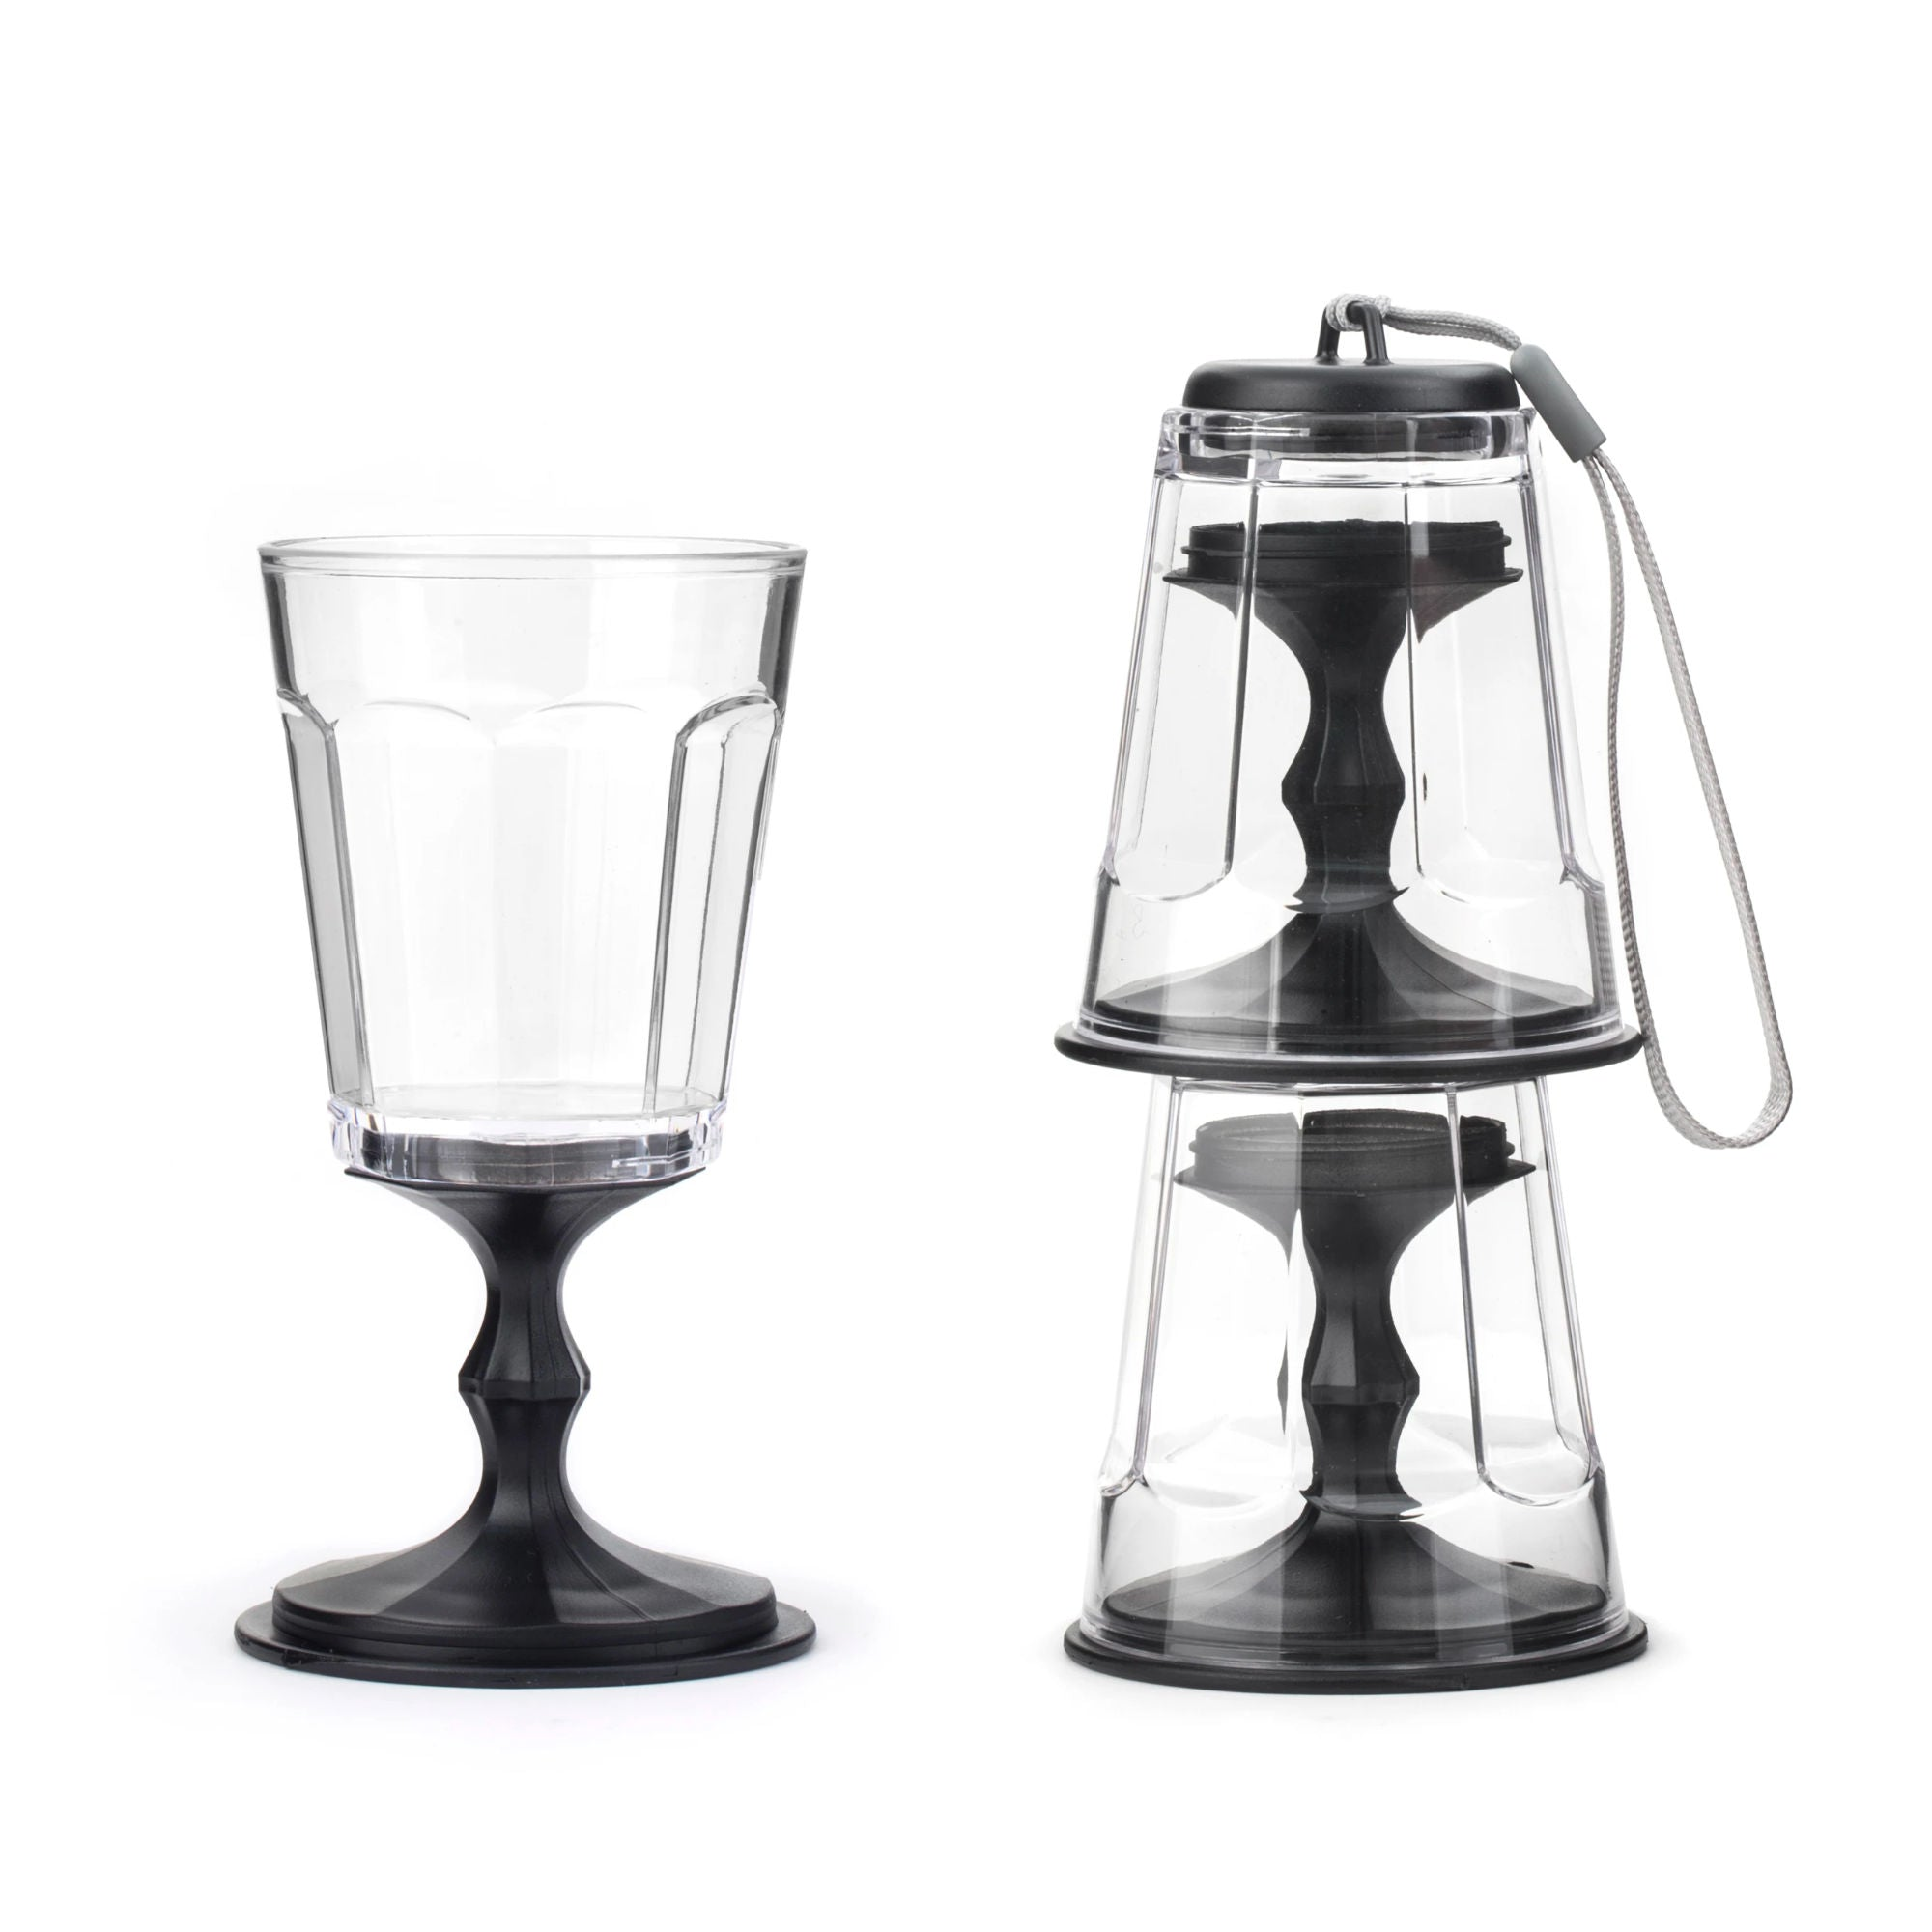 Kikkerland Stacking Wine Glass 2-Pack